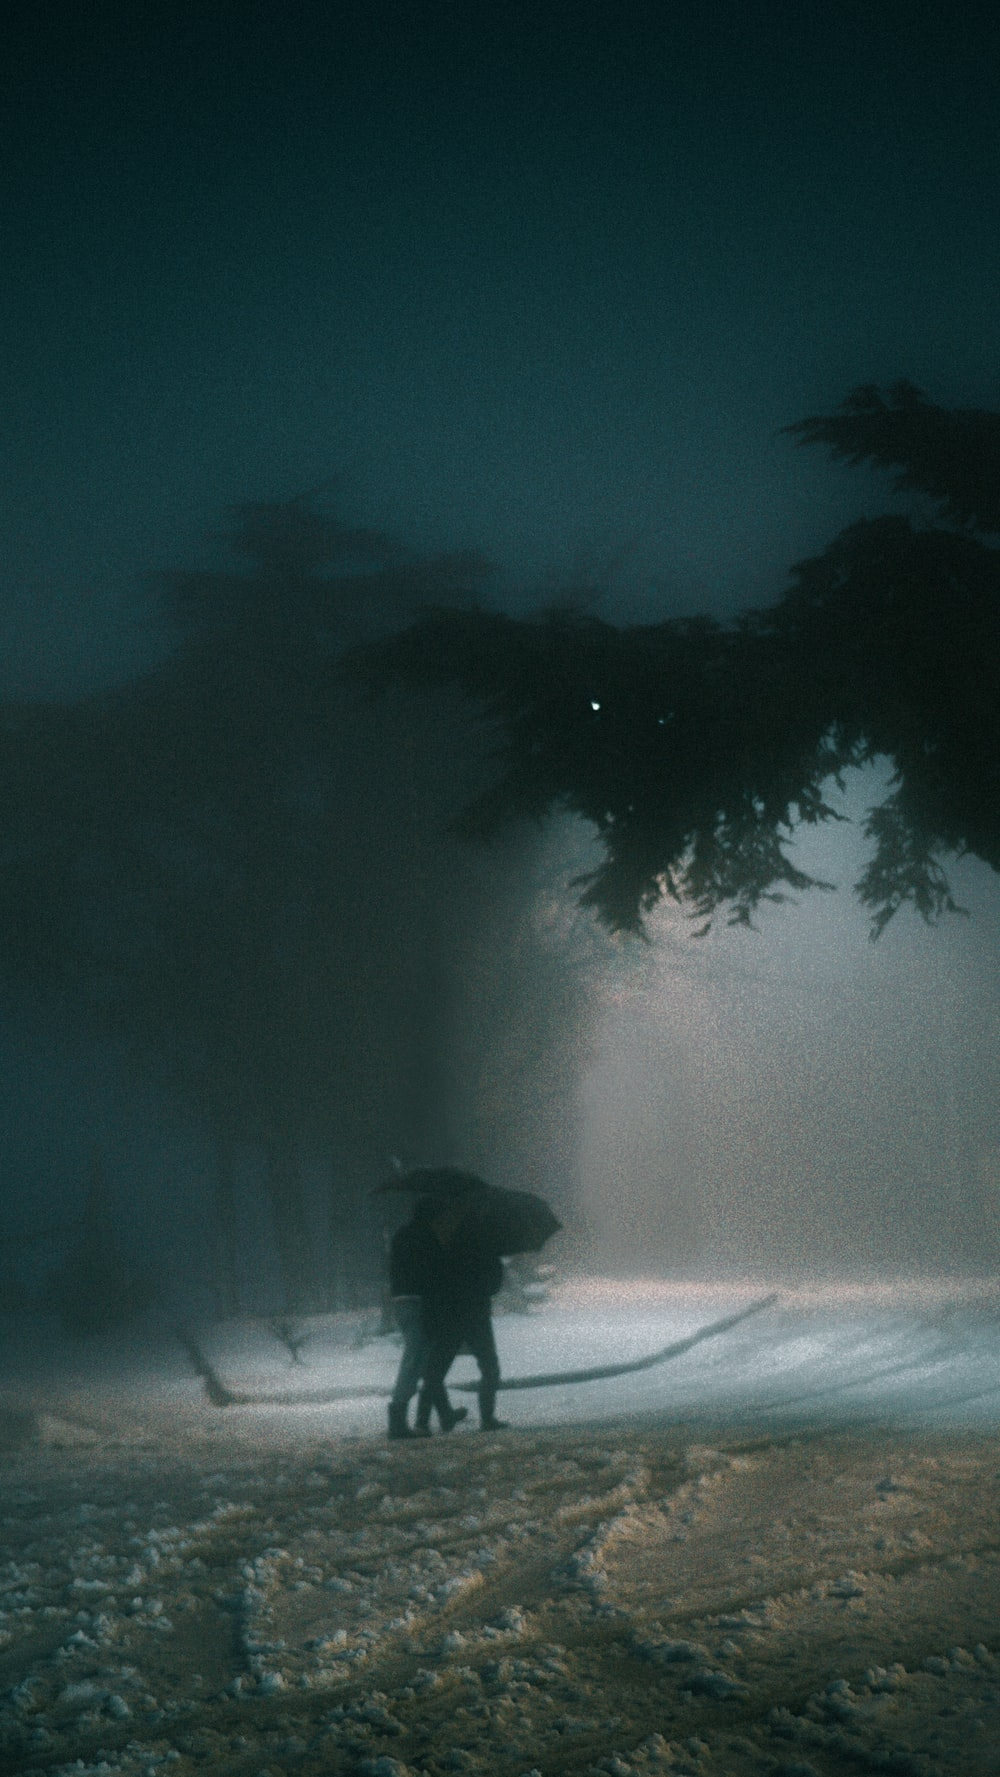 person standing on snow covered ground during night time